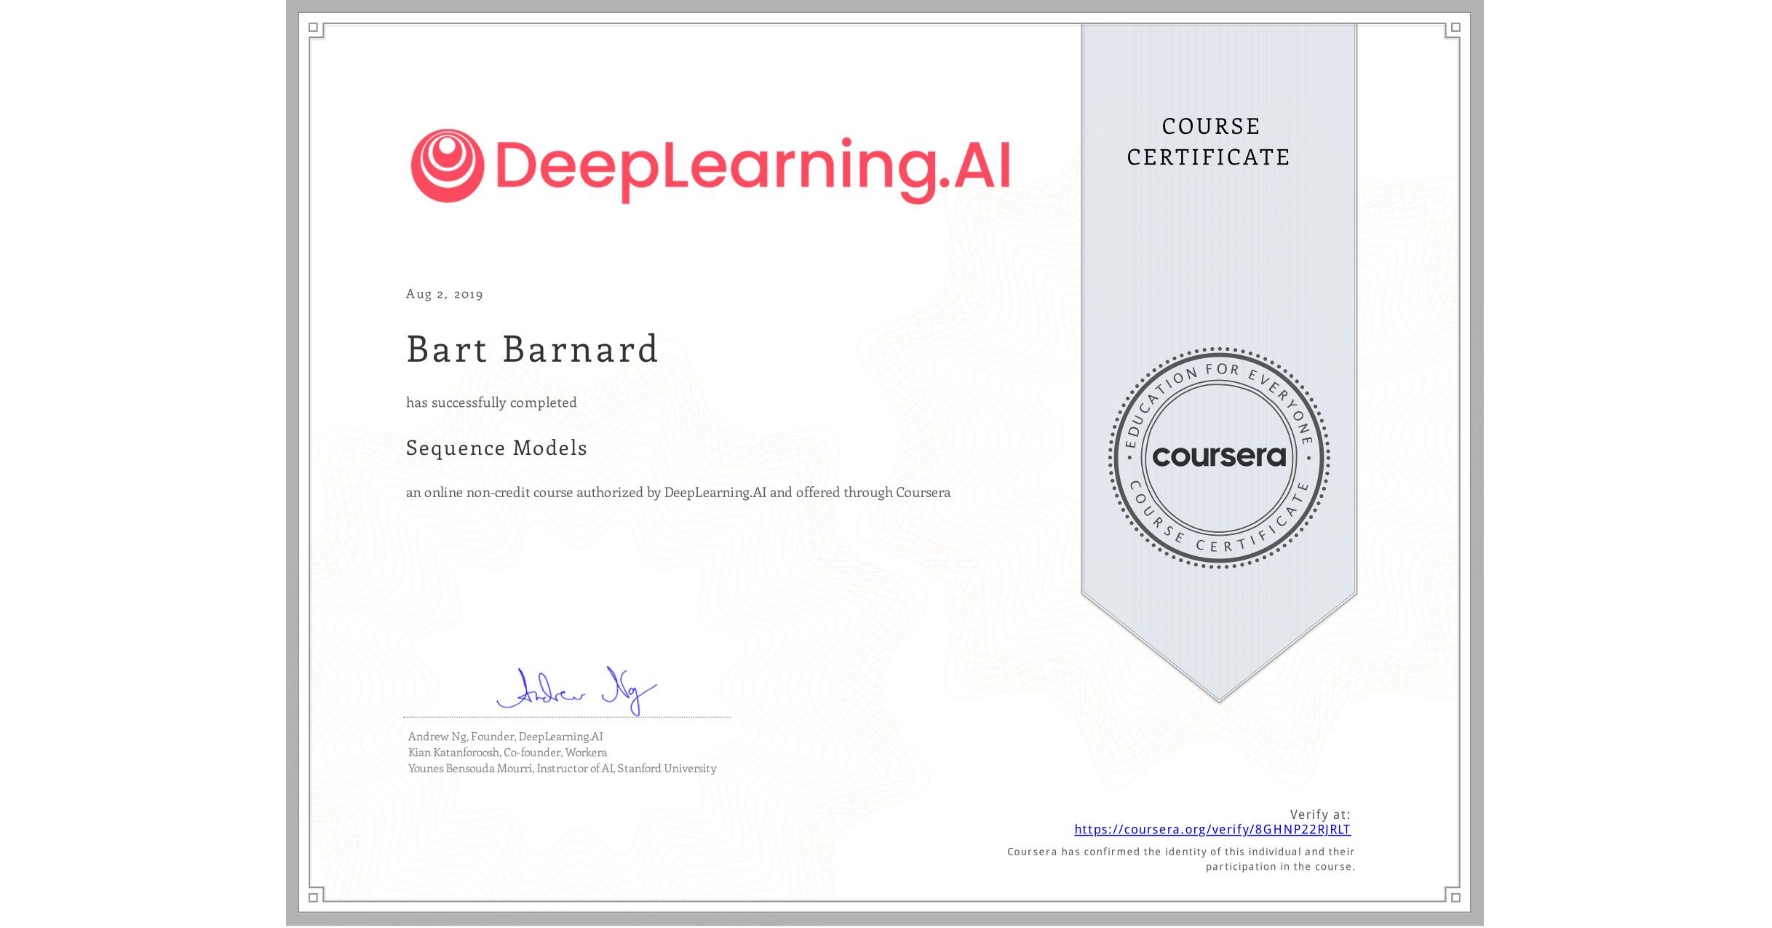 View certificate for Bart Barnard, Sequence Models, an online non-credit course authorized by DeepLearning.AI and offered through Coursera